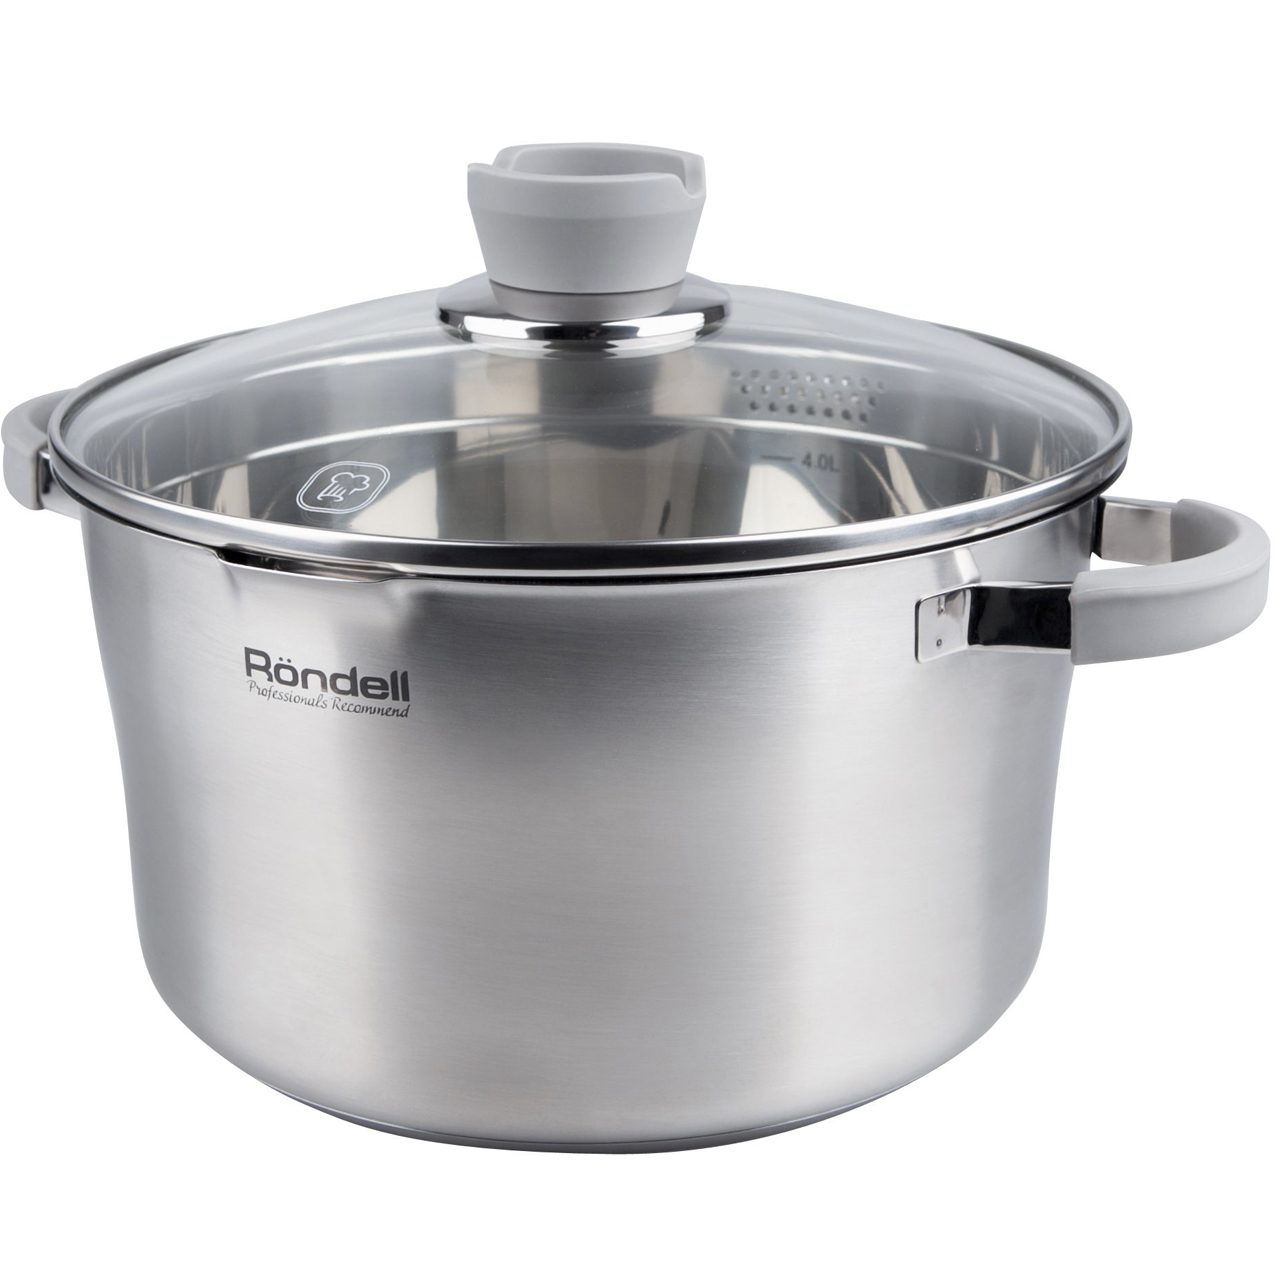 Фото - Saucepan with lid Rondell Favory (5,6 L) RDS-742 (Diameter 24 cm, Volume 5.6 L, stainless steel, suitable for all types of plates) saucepan with lid eurostek es 1007 volume 4 5 liter diameter 22 cm пятислойное bottom suitable for all types of plates